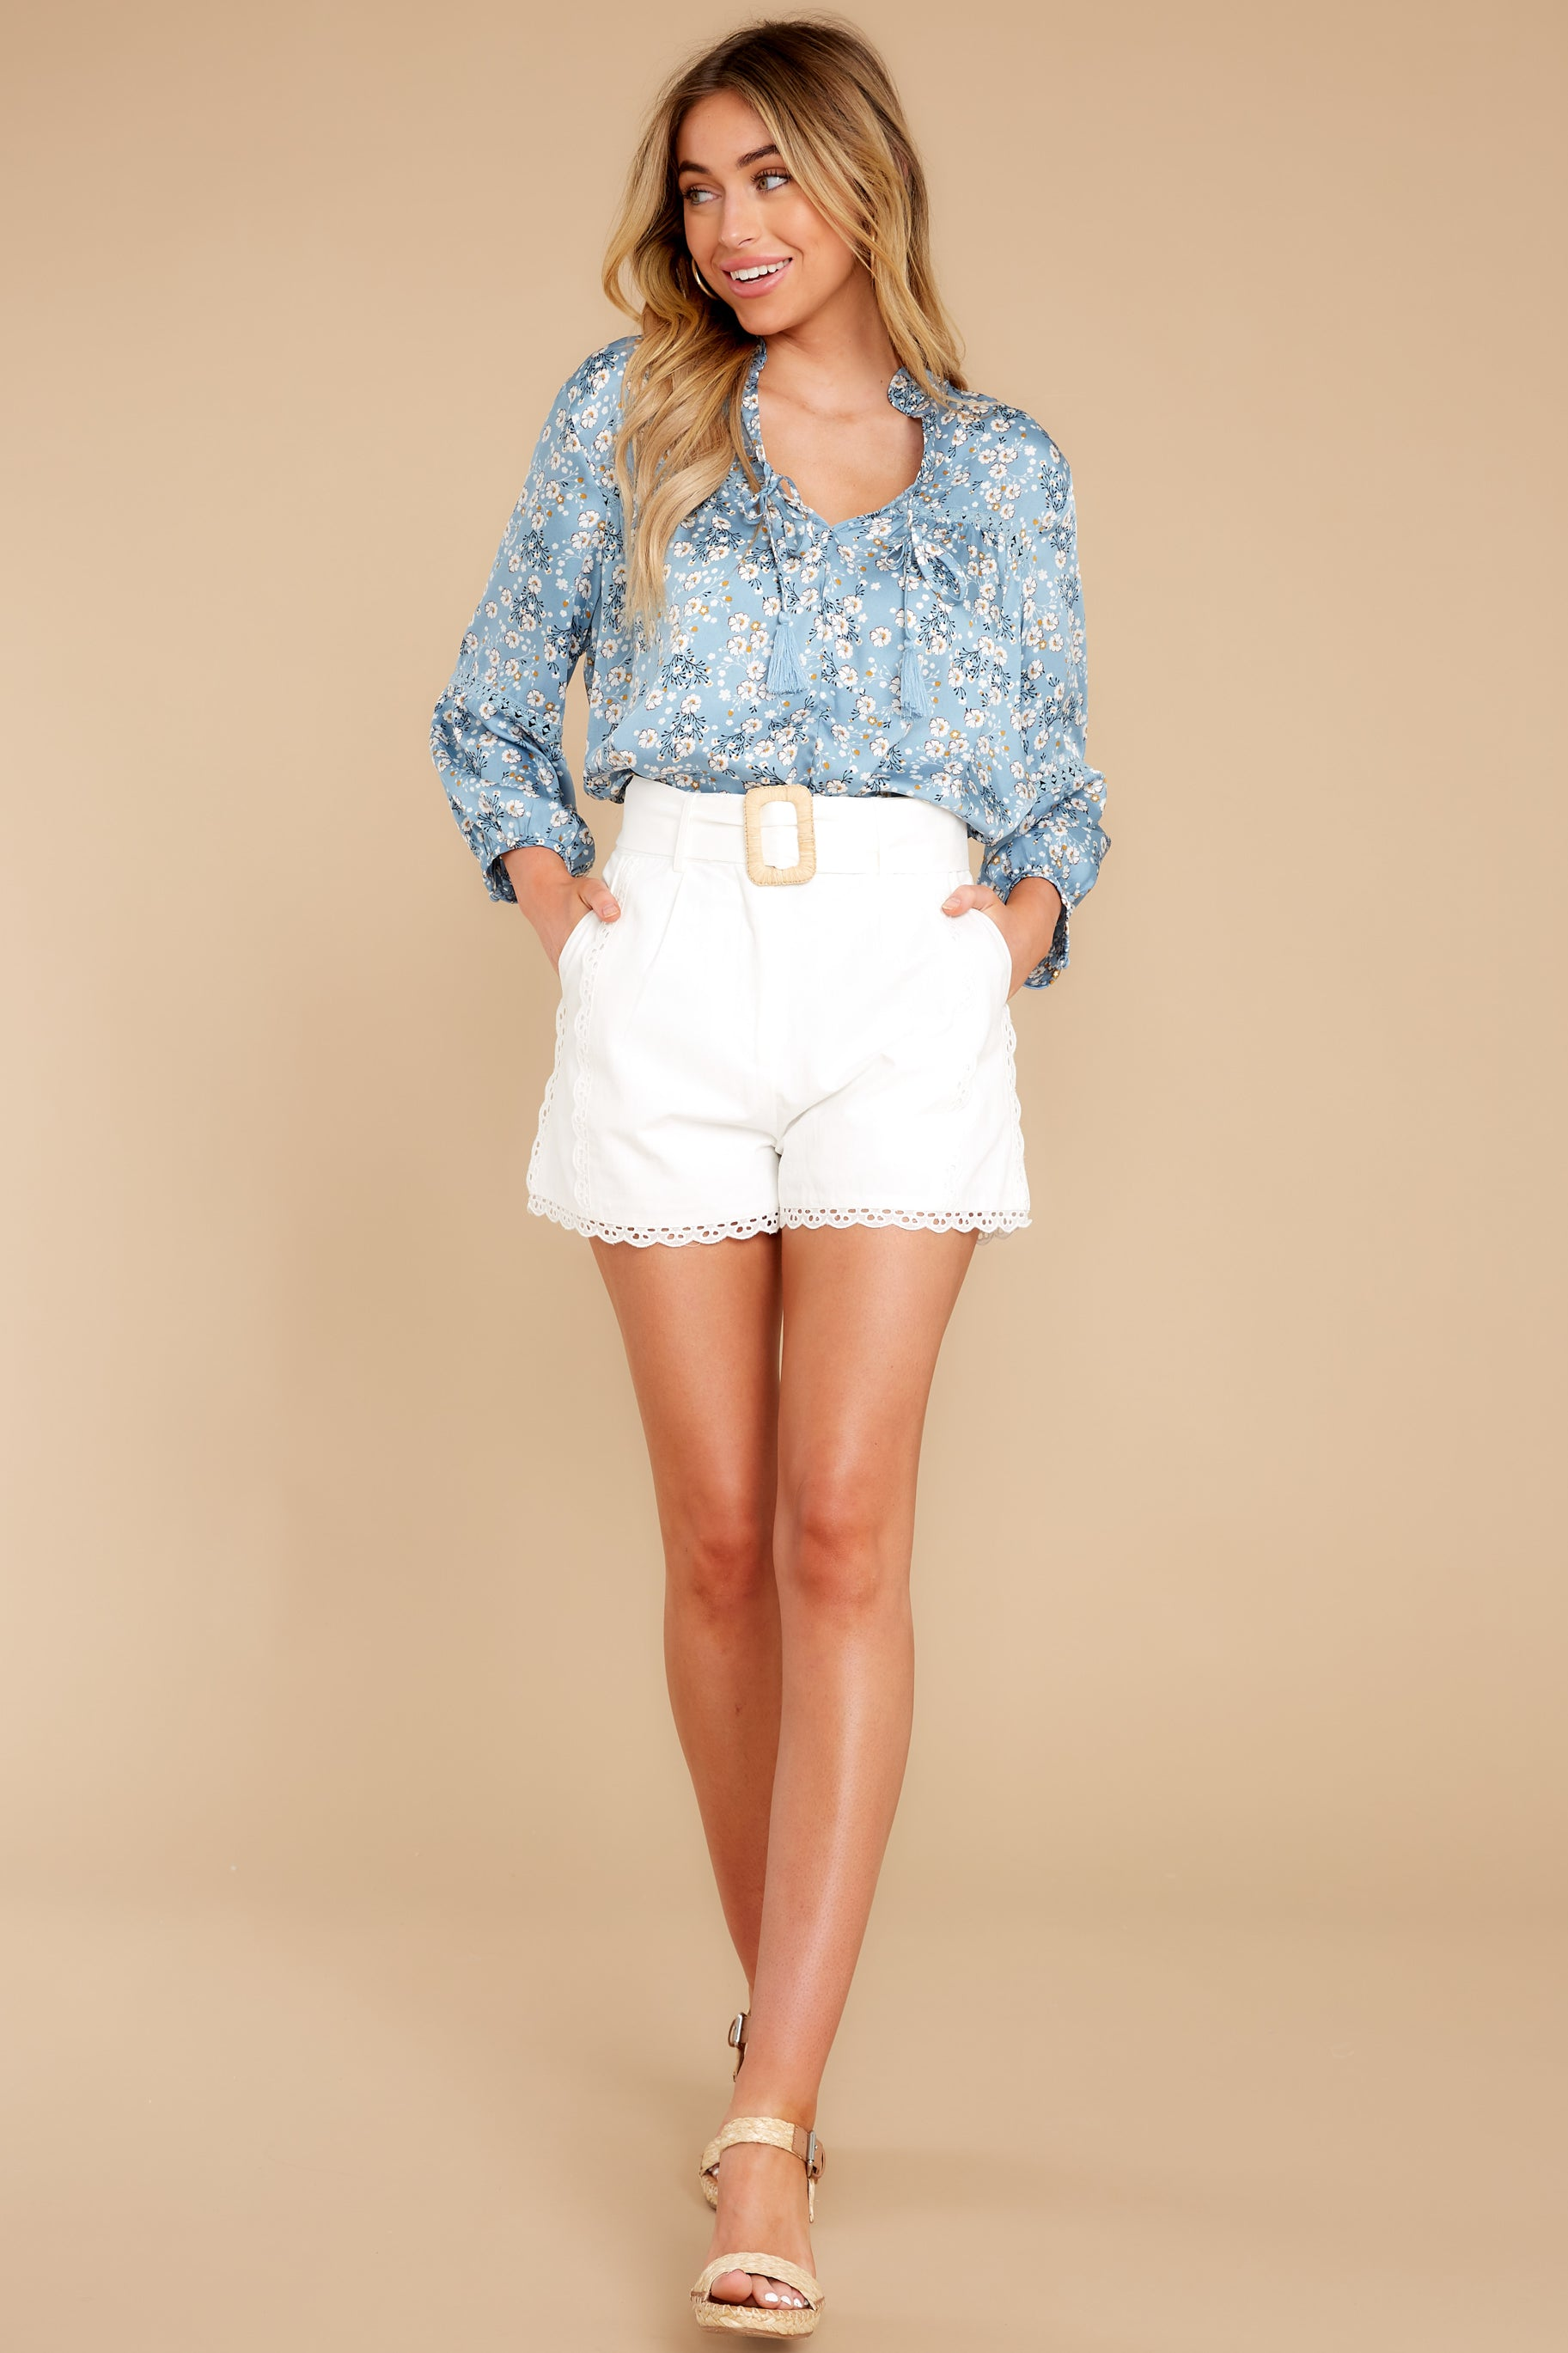 3 Little Cutie Light Blue Floral Print Top at reddress.com